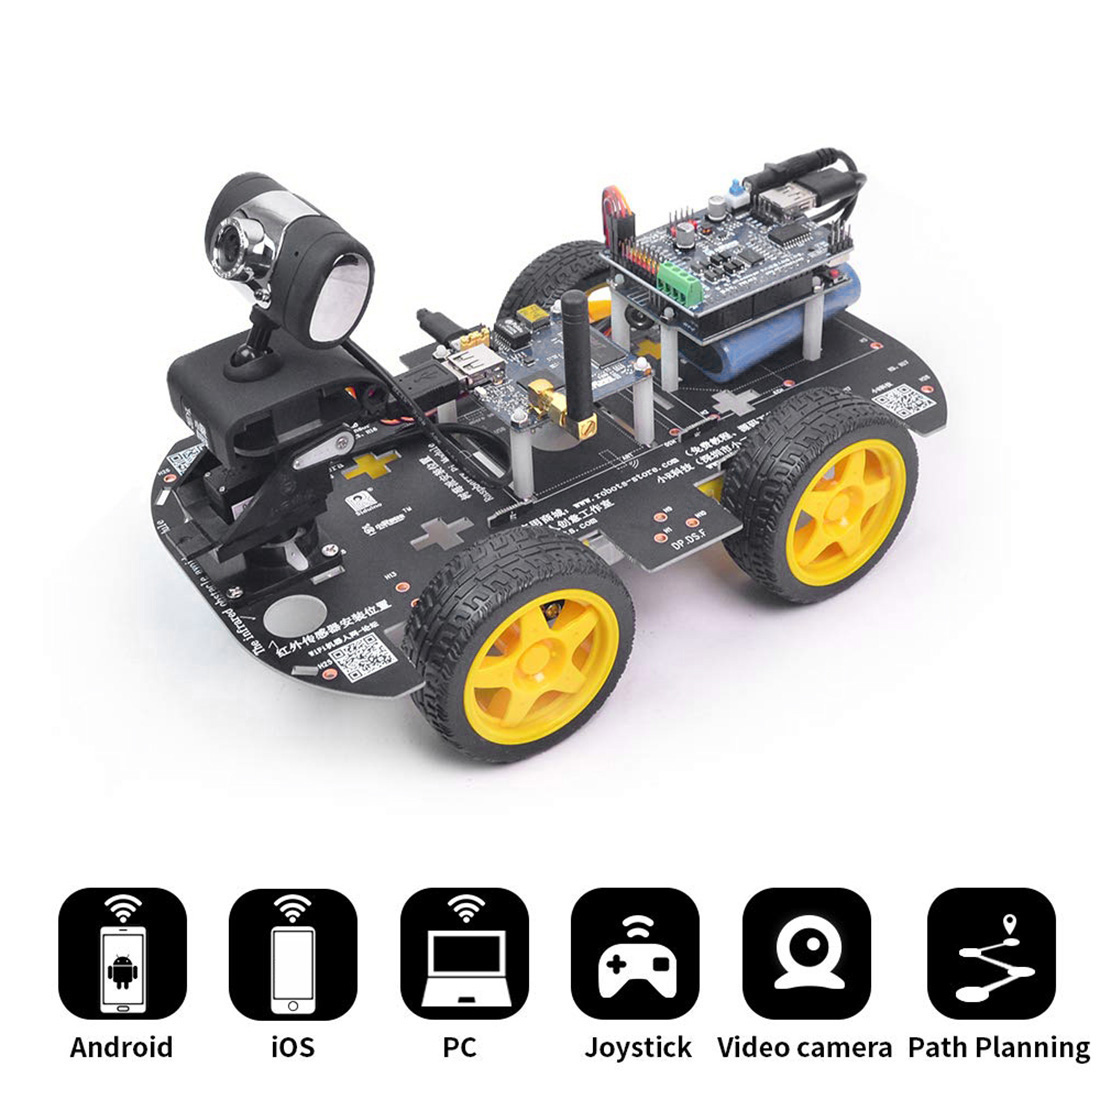 DIY Programmable Robot Car Wifi Steam Educational Car For Raspberry Pi 4 (2G) Brain-Training Toy Gift - Standard Edition US Plug